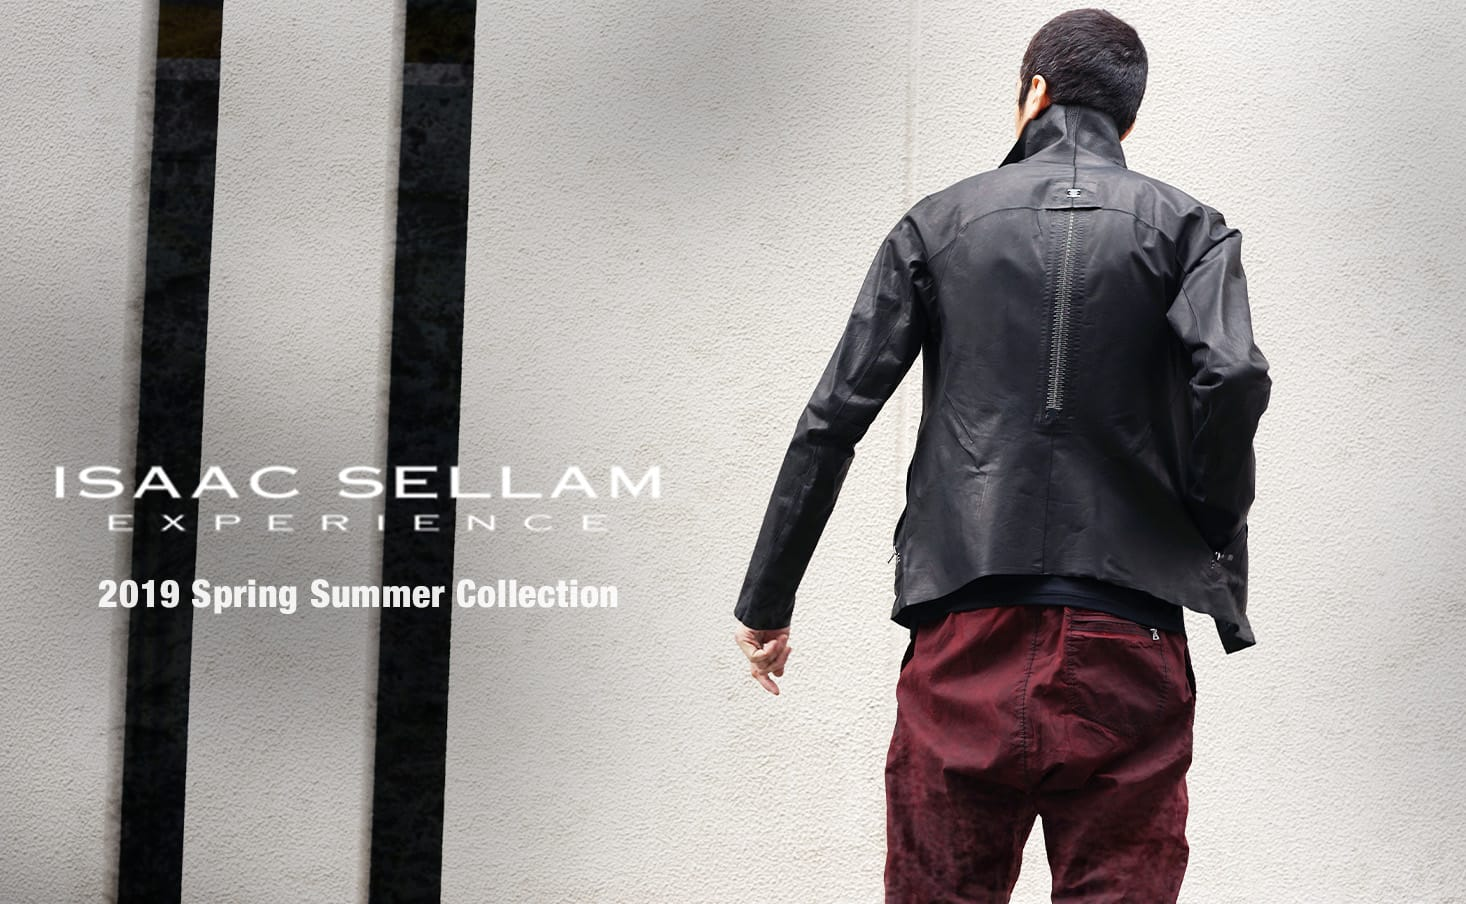 ISAAC SELLAM 2019 Spring Summer Collection